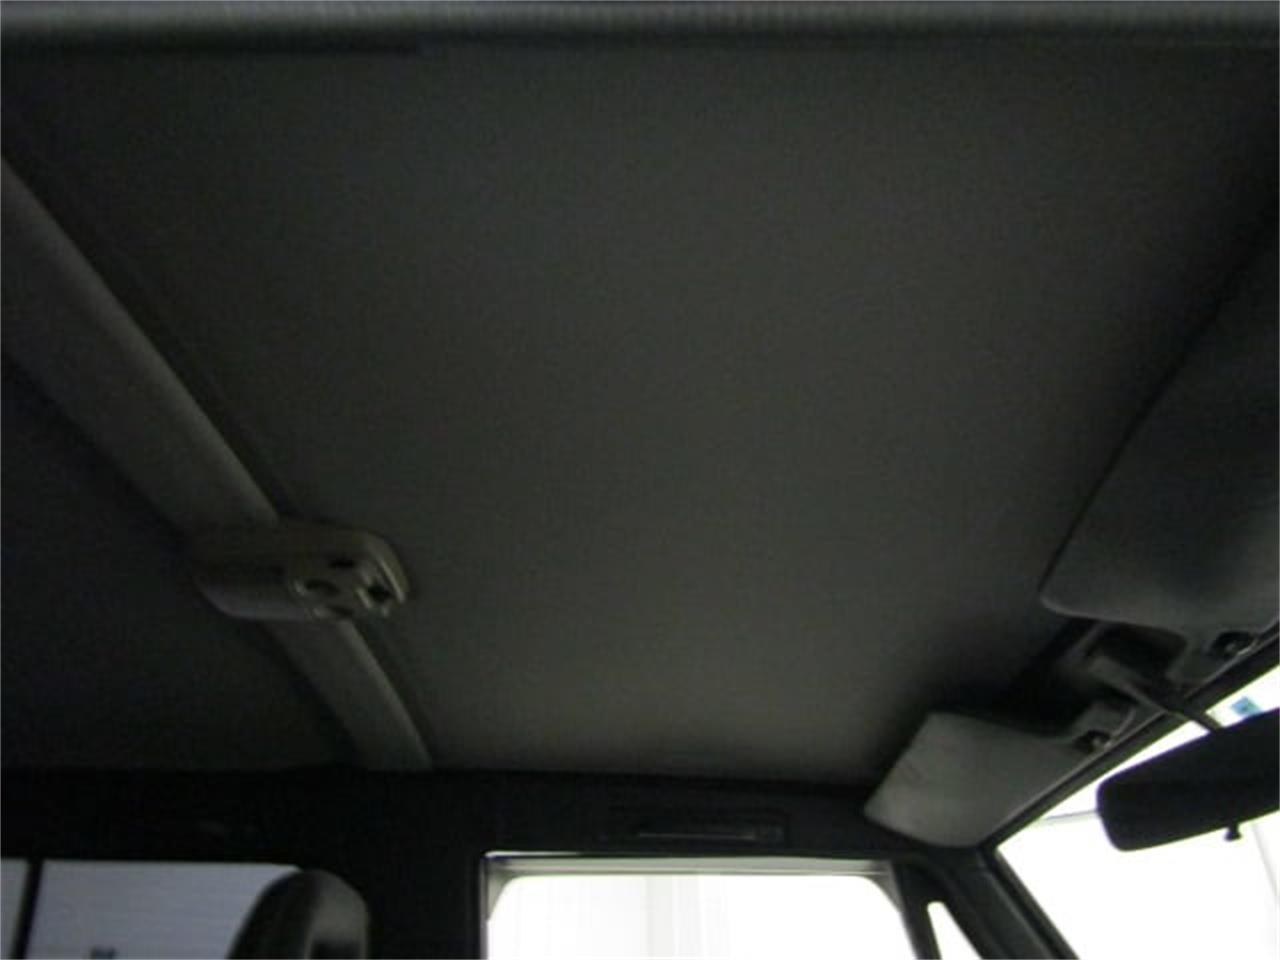 Large Picture of '89 Mitsubishi Pajero - $8,900.00 Offered by Duncan Imports & Classic Cars - LI1X